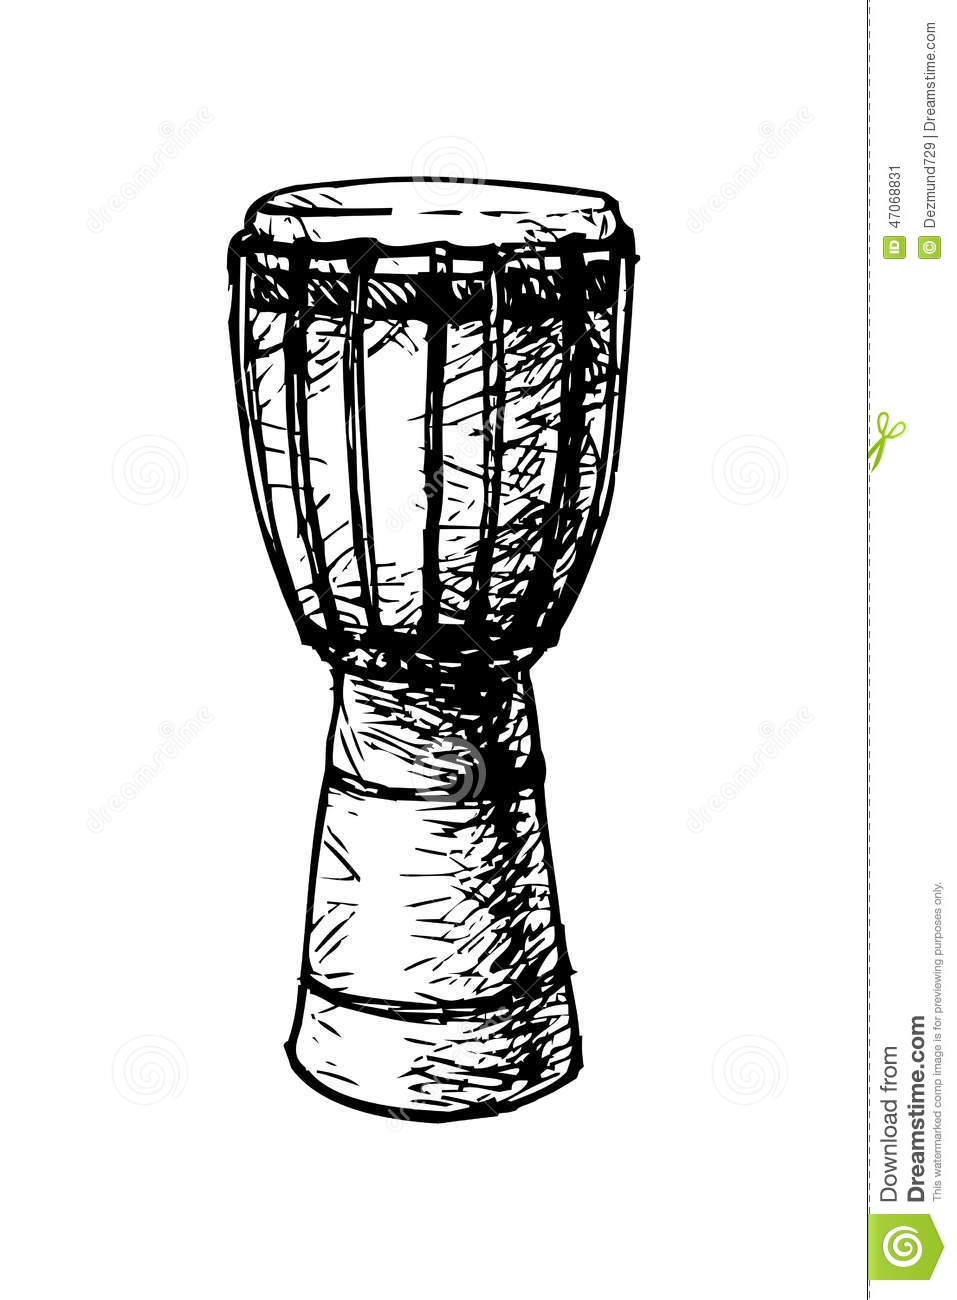 Black and white drawing of a traditional African drum.